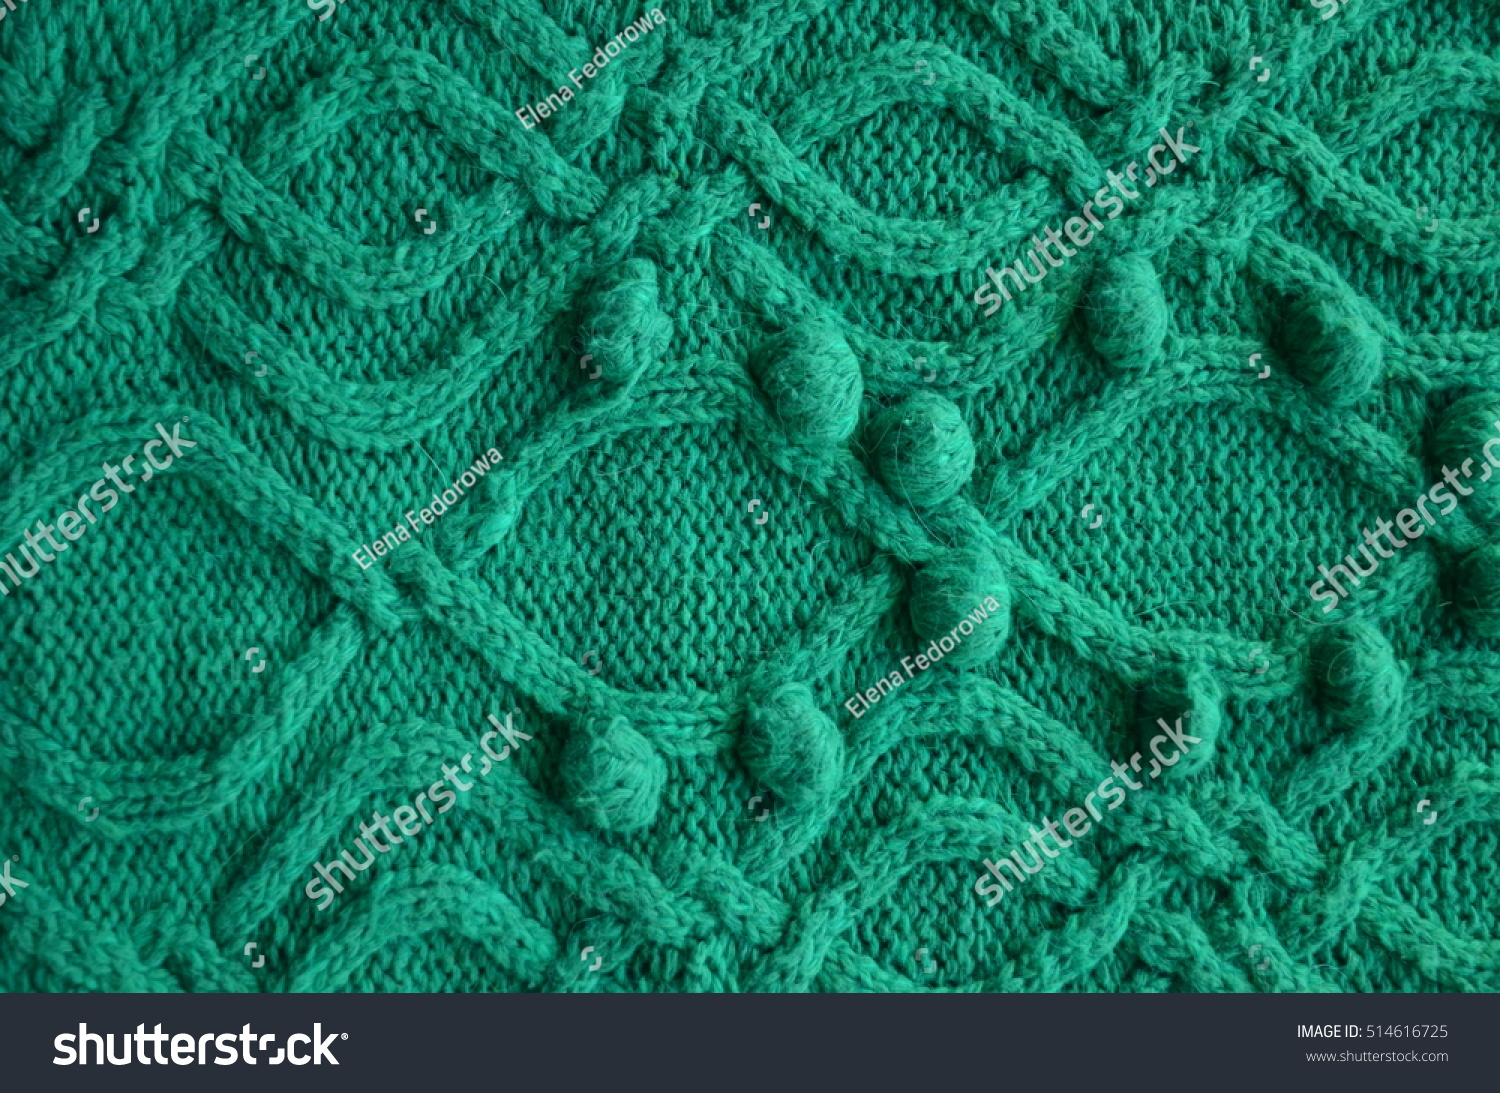 Woolen Knitting Patterns : Cloth Wool Knitting Large Knit Woolen Stock Photo 514616725 - Shutterstock